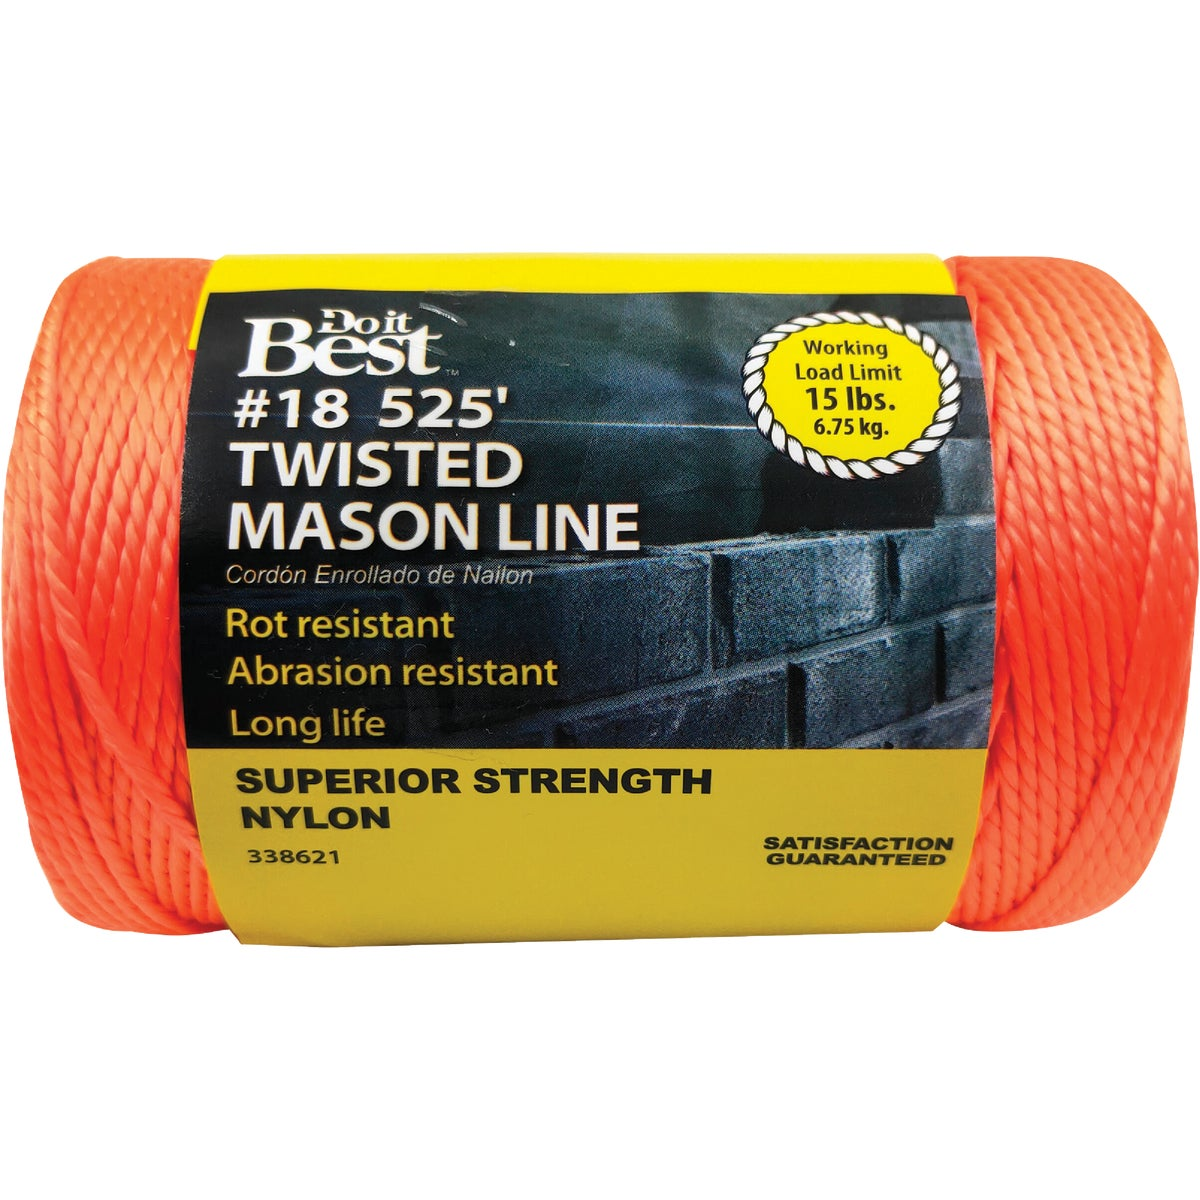 525' NYL ORNG MASON LINE - 338621 by Do it Best